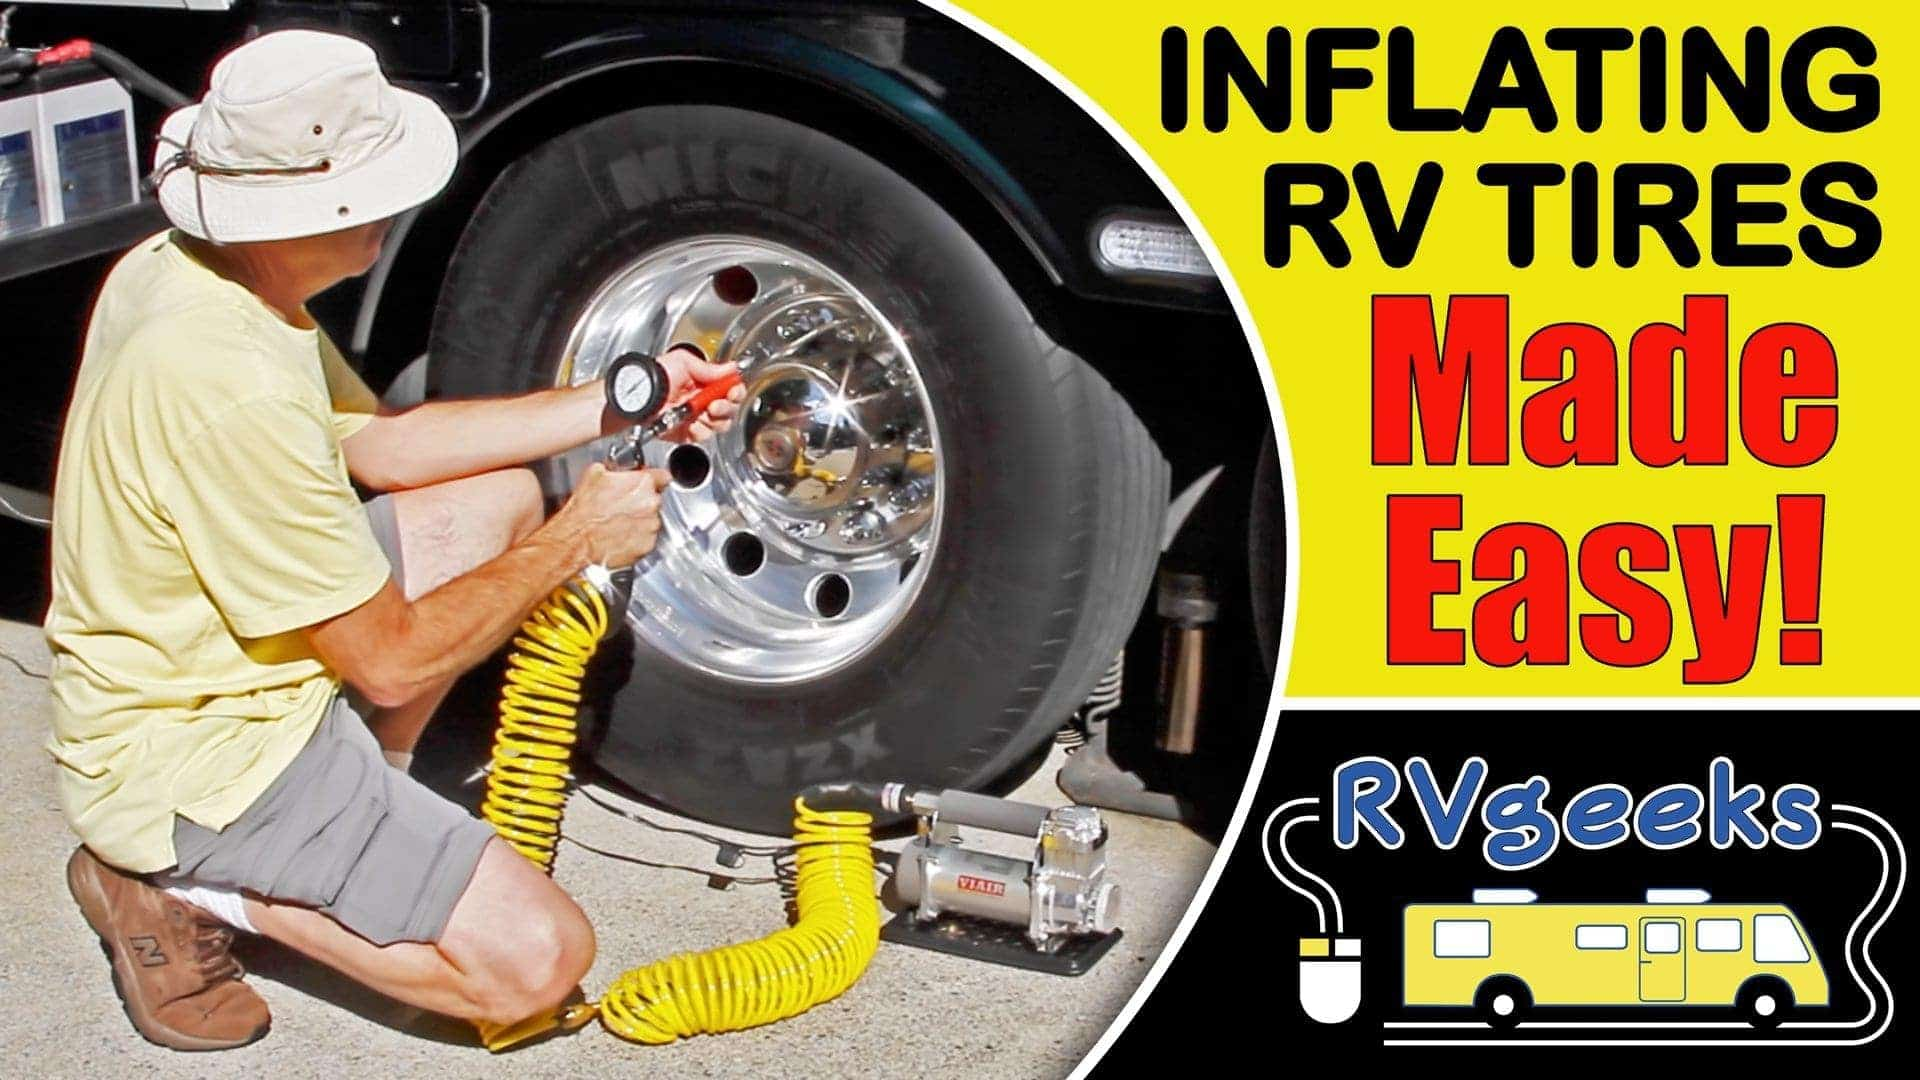 How To Inflate Rv Tires The Easy Way Thervgeeks